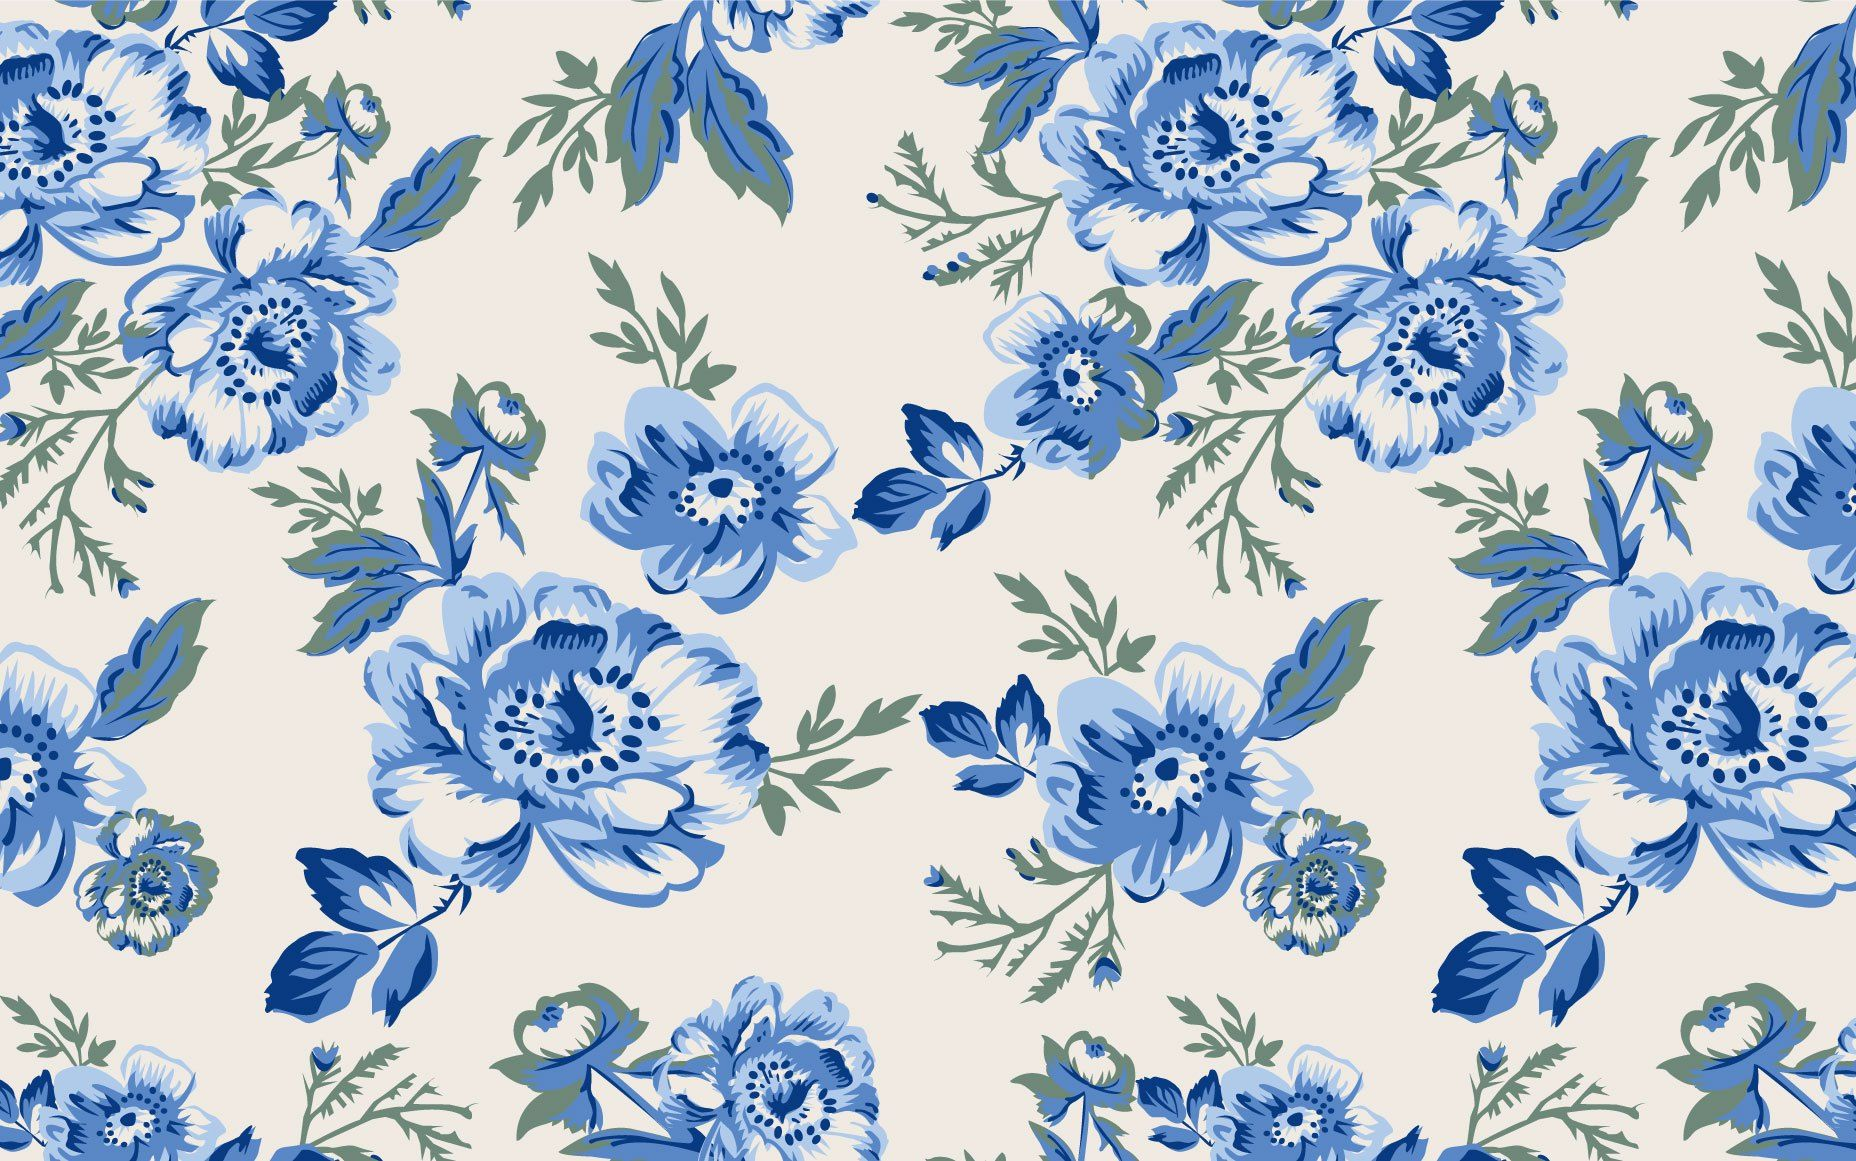 Vintage Floral Desktop Wallpaper Blue Vintage Flower Background 1856x1161 Download Hd Wallpaper Wallpapertip